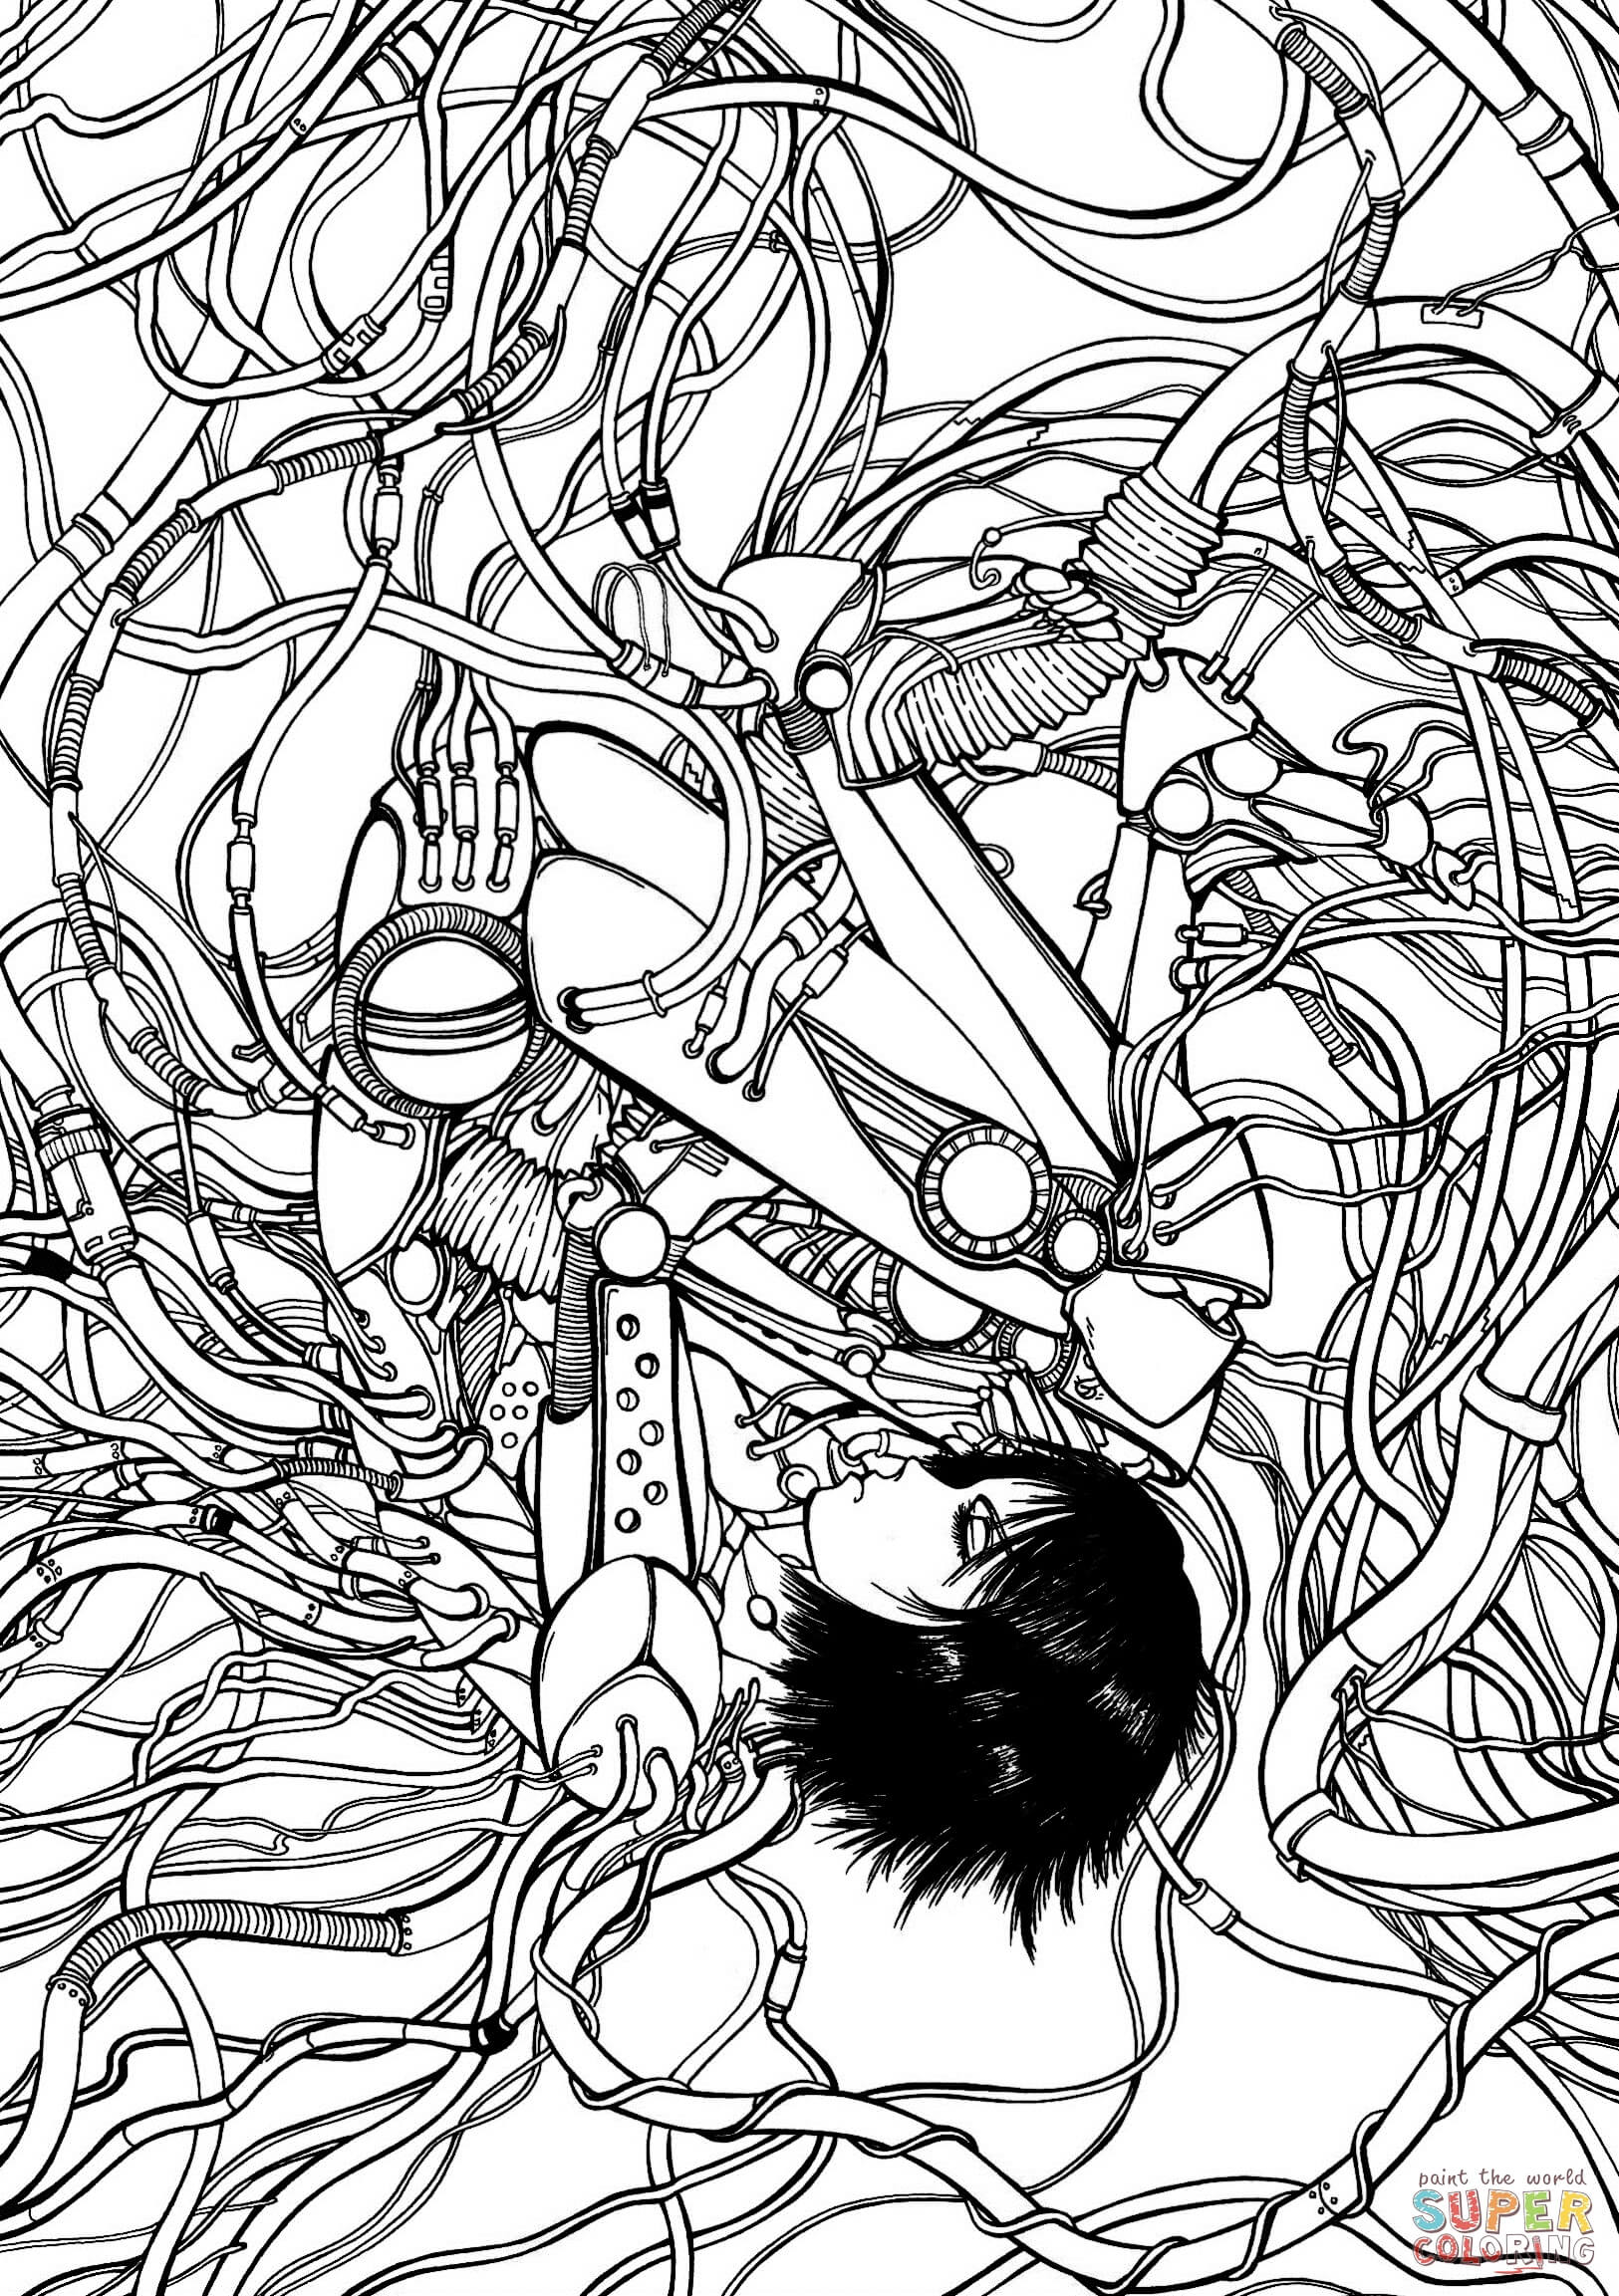 Gally From Gunnm Battle Angel Alita Coloring Page Free